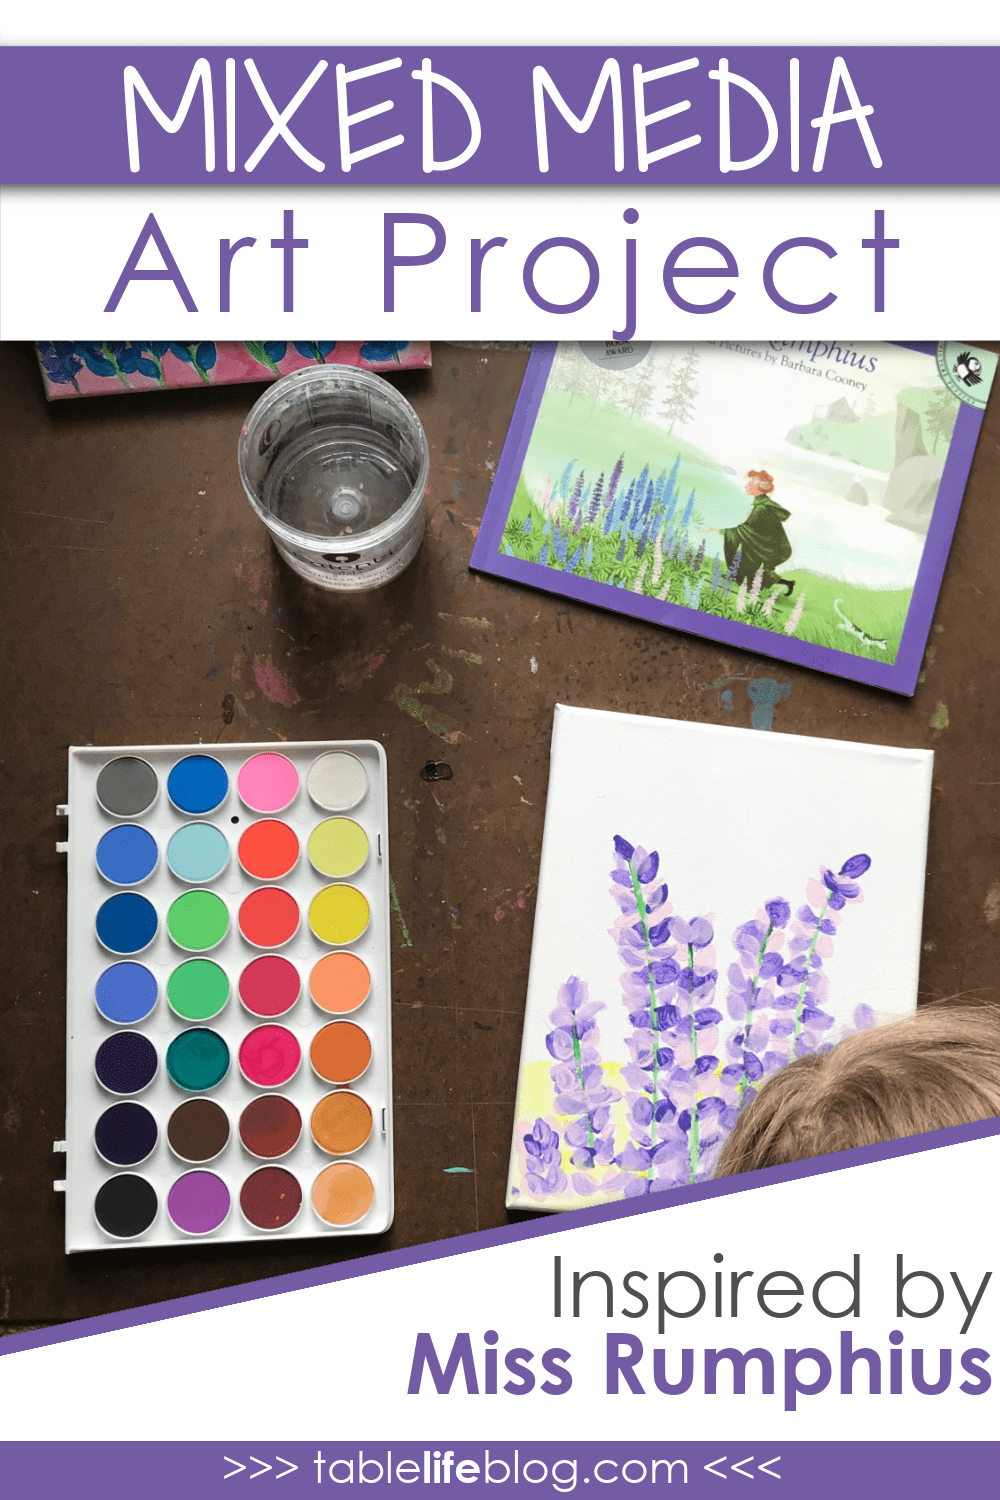 Looking for a way to make the world more beautiful? This Miss Rumphius mixed media art project is a great place to start!